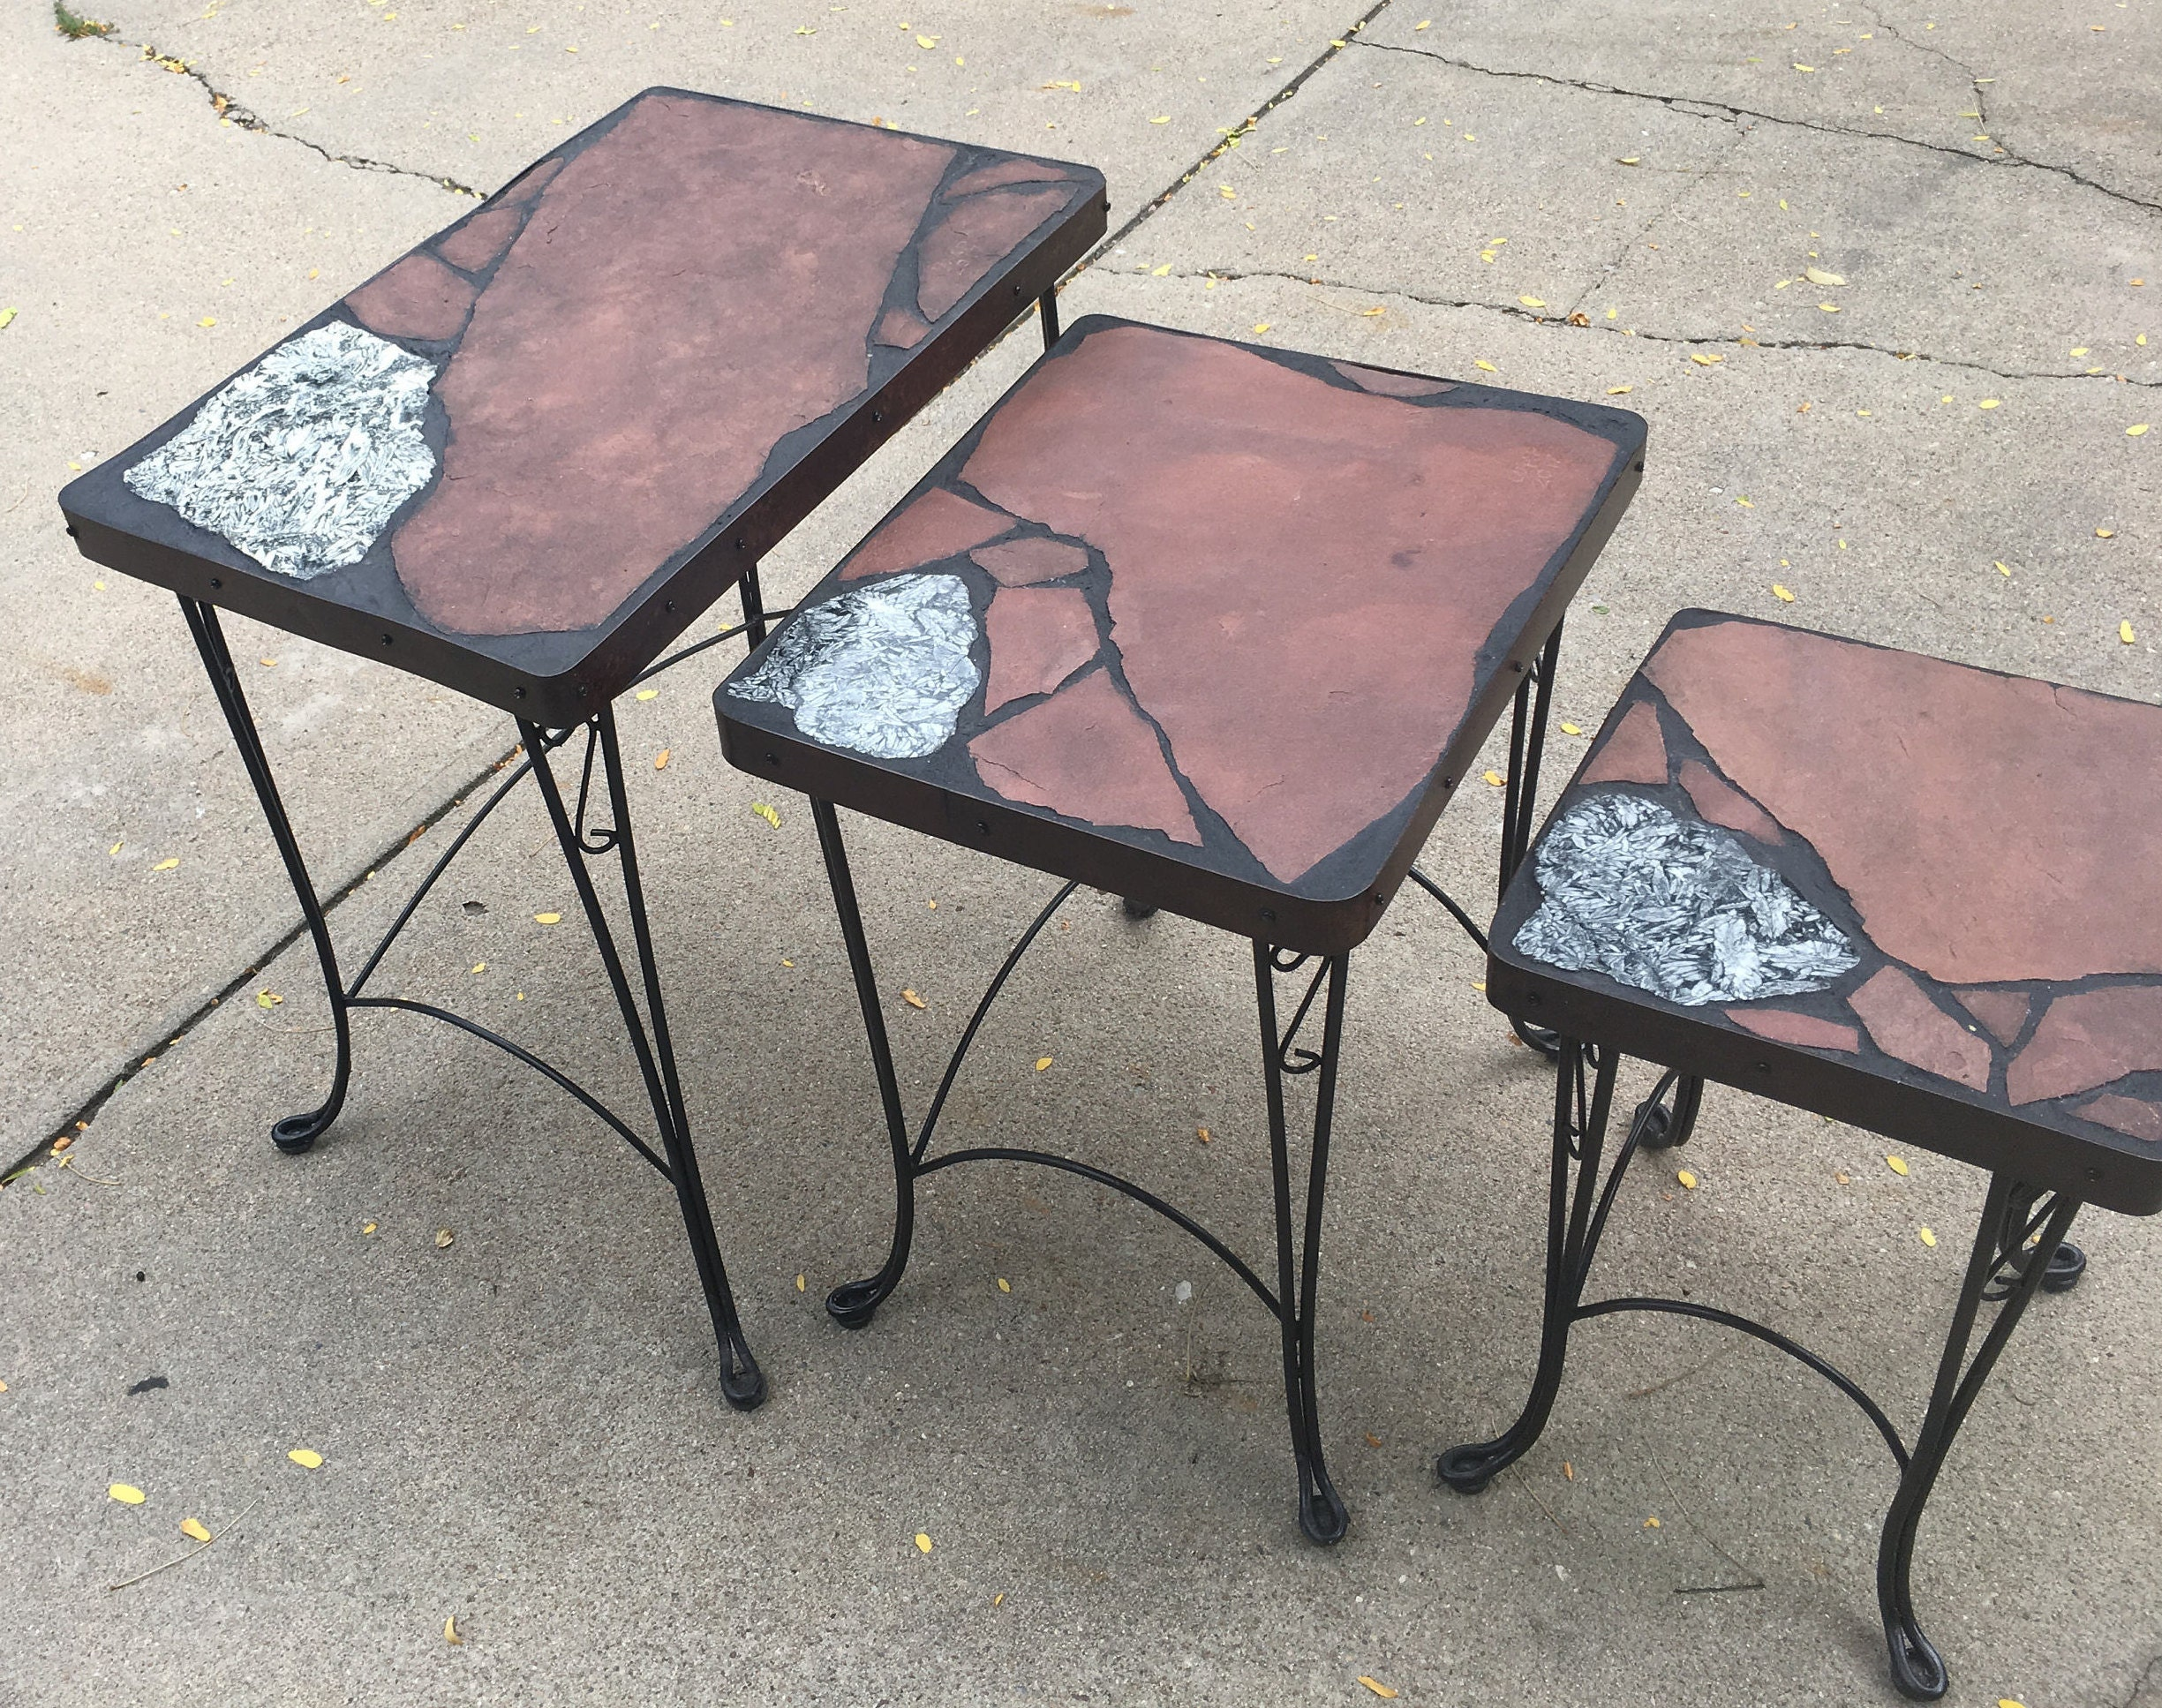 Pinolyth Stack A set of three netural stone folk art tables on